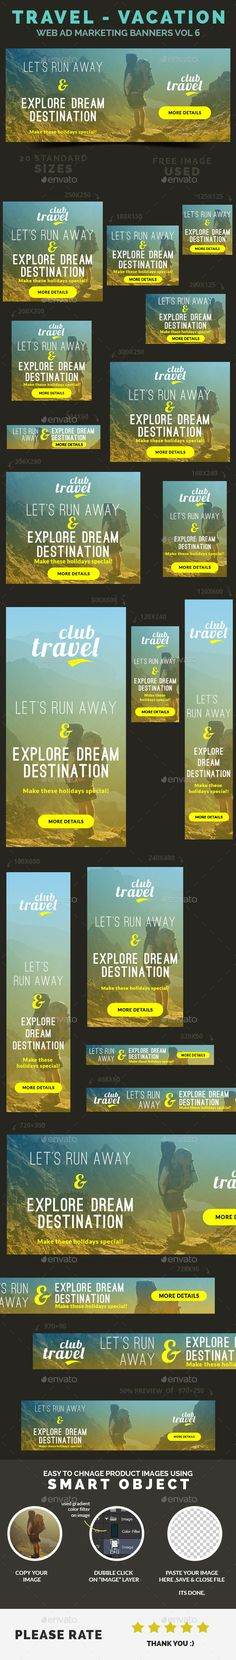 Travel - Vacation Web Ad Marketing Banners  Template PSD   Buy and Download: http://graphicriver.net/item/travel-vacation-web-ad-marketing-banners-vol-6/9305436?WT.oss_phrase=&WT.oss_rank=16&WT.z_author=webduck&WT.ac=search_thumb&ref=ksioks